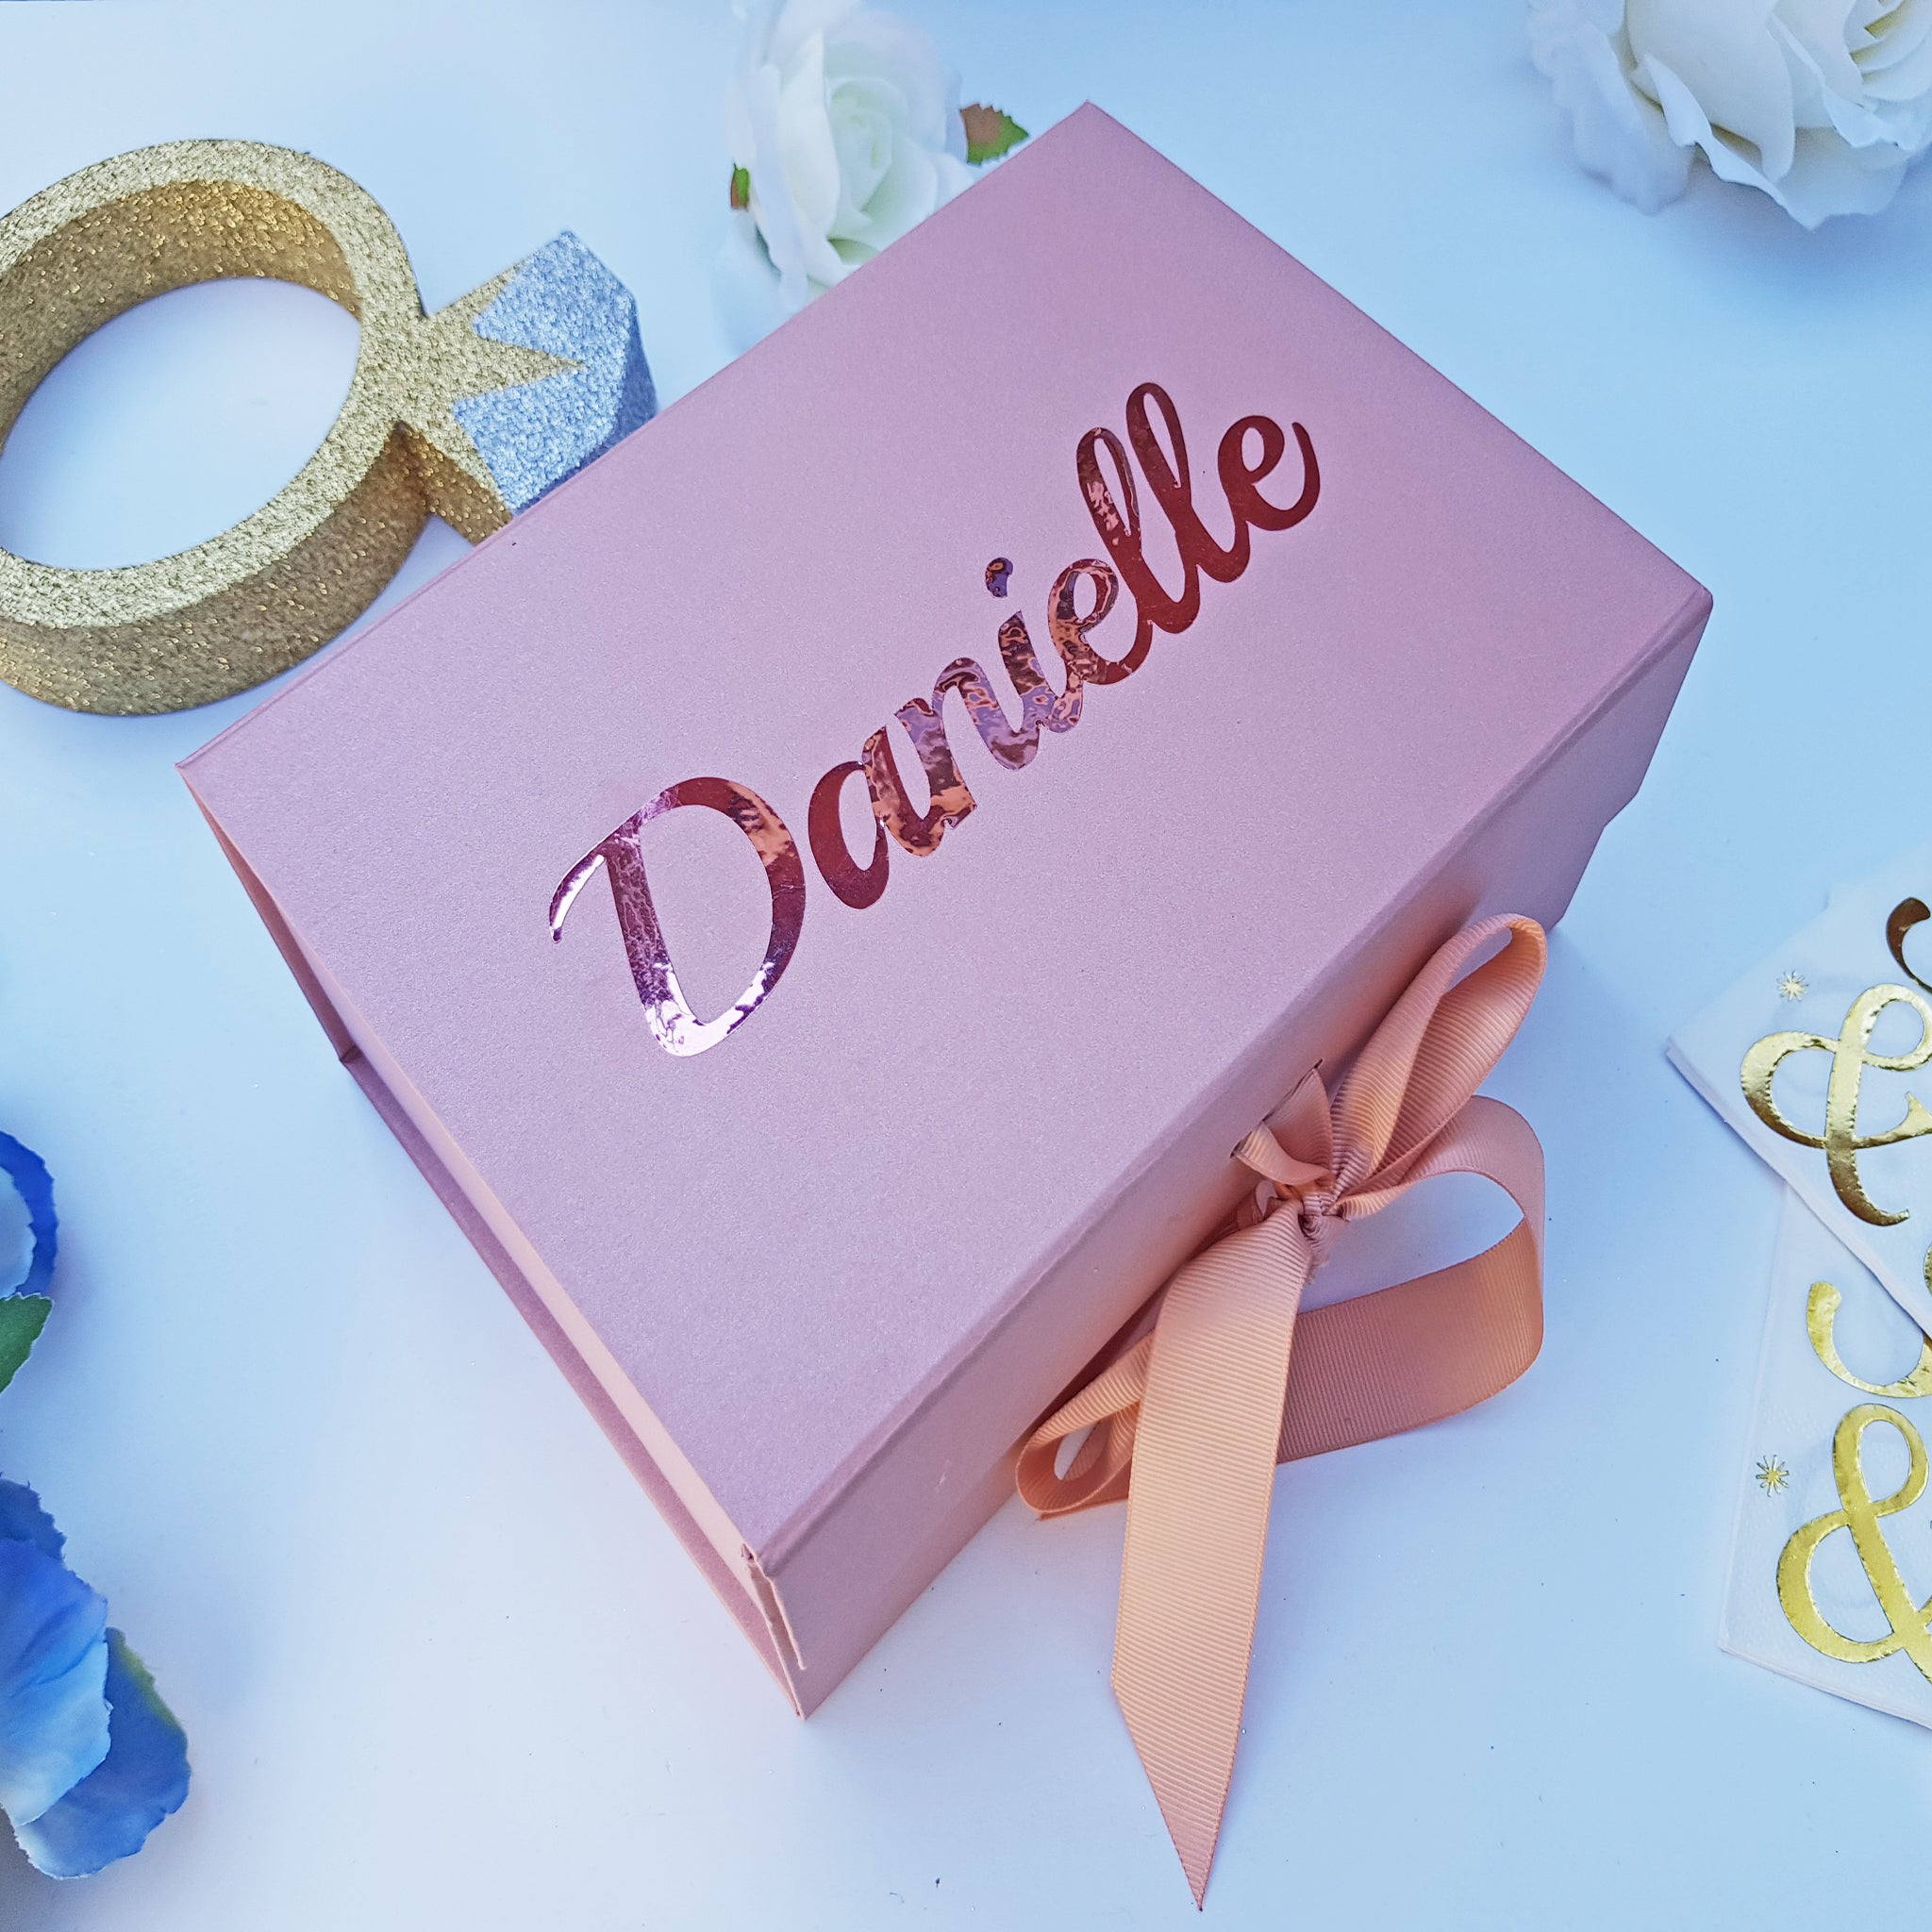 Rose Gold Personalised Gift Box For Birthday Bridesmaid Proposal Or Christmas Gift Box